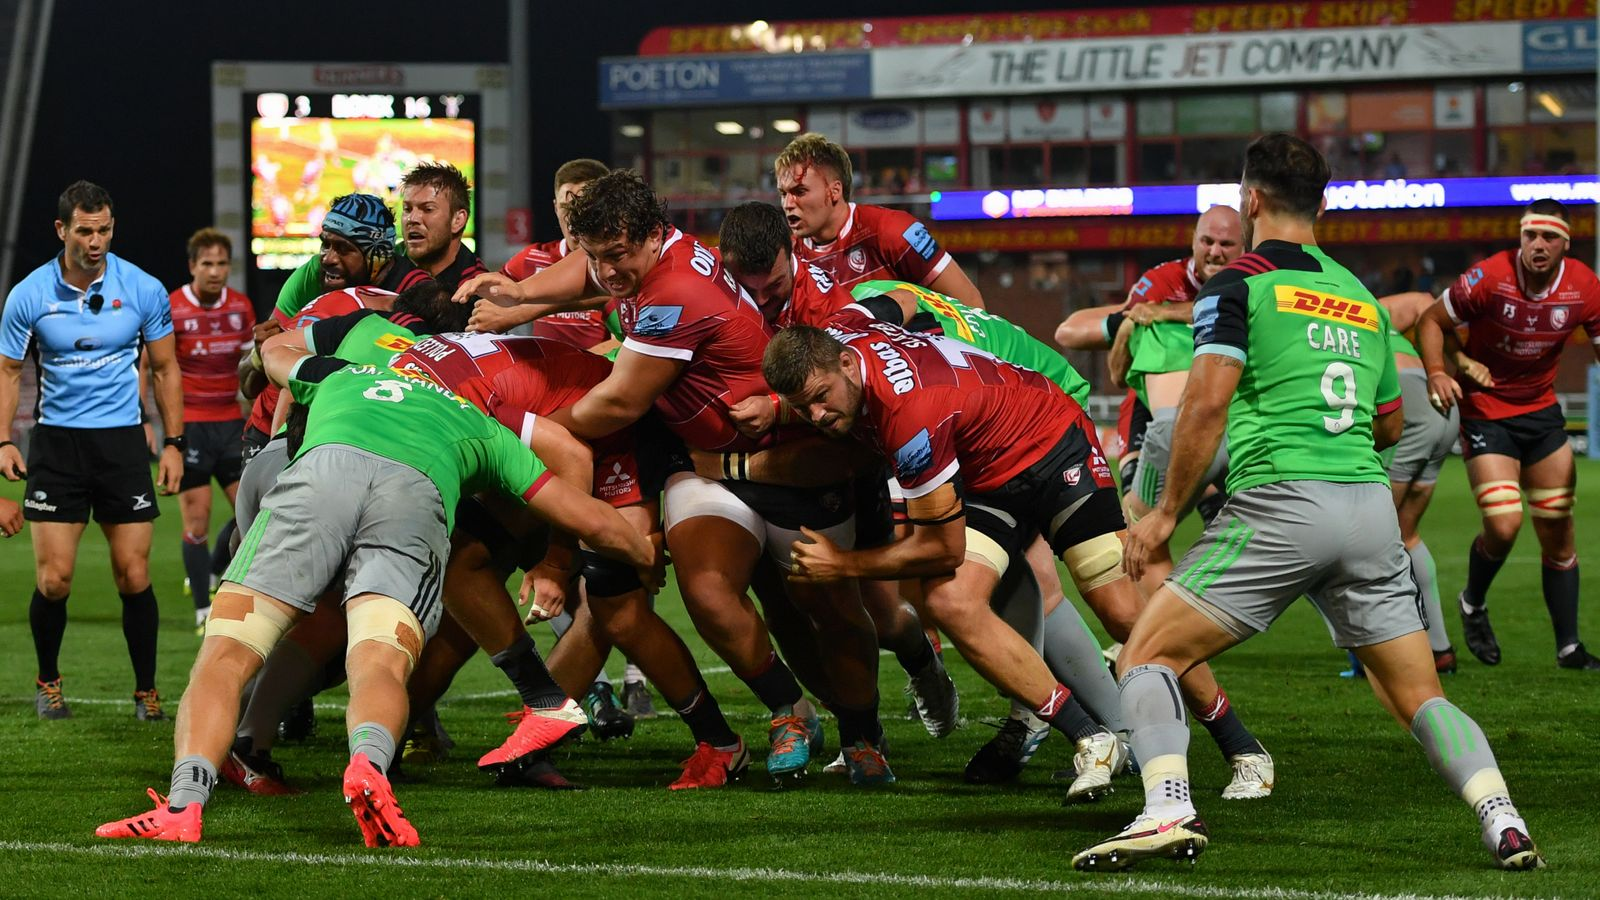 Gallagher Premiership matches at Bath and Bristol selected for pilot test events